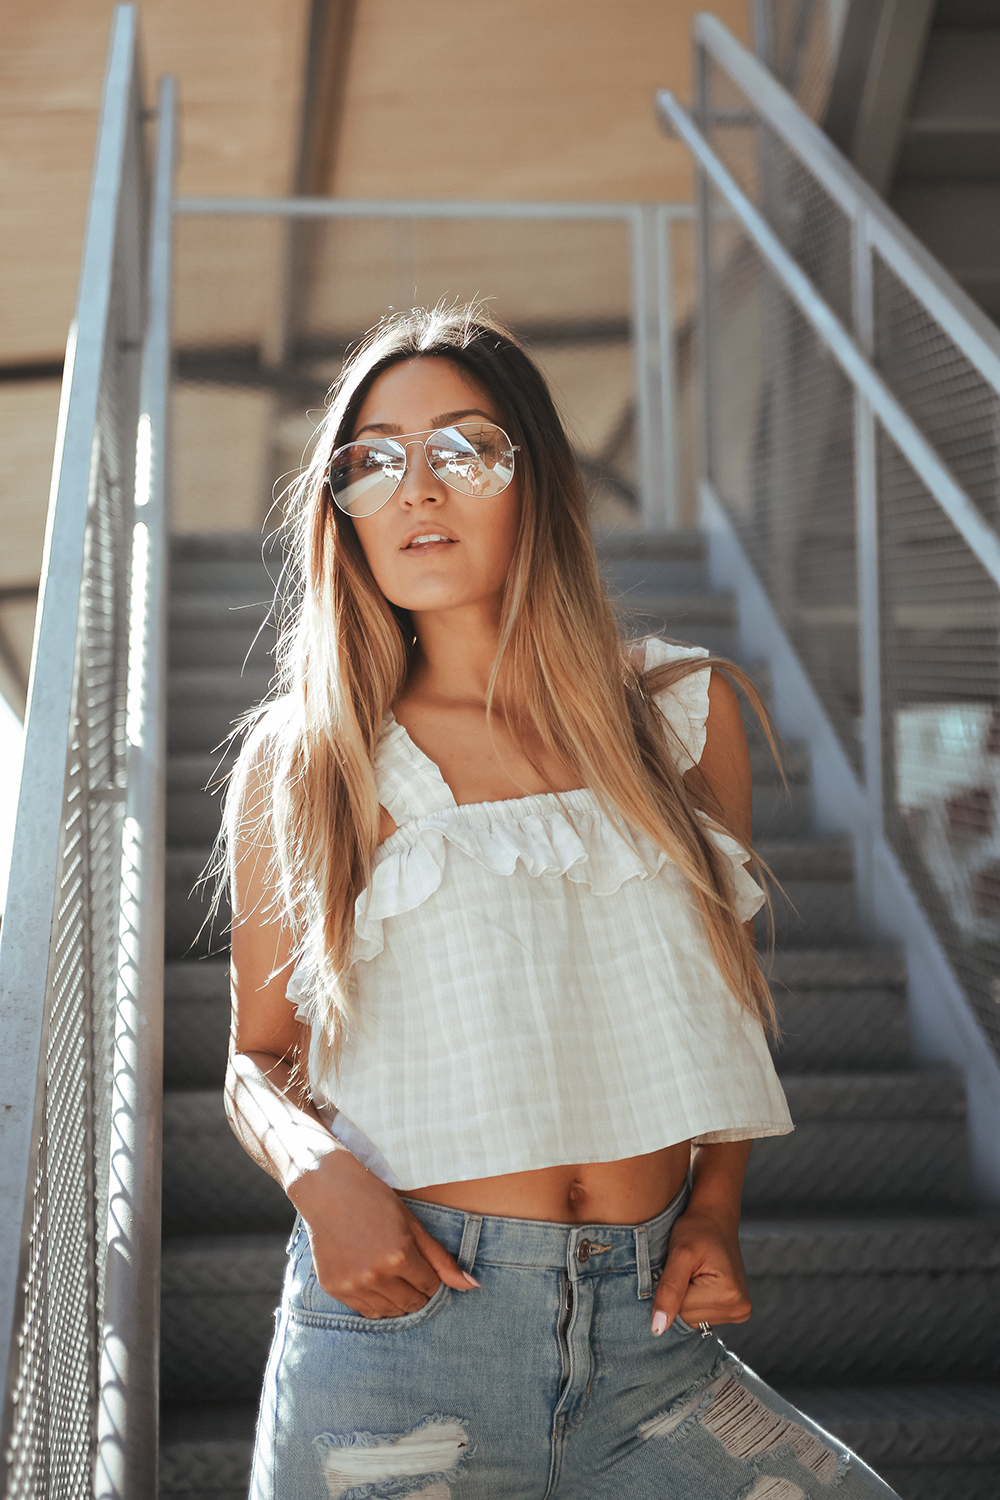 California Winter, Sincerely Jules, Sincerely Jules Emma Top, UK Glamorous, glamorous, forever 21 boyfriend jeans, gold loafers, zero uv clear glasses, ootd, lifestyle blogger, la blogger, mommy blogger, street style